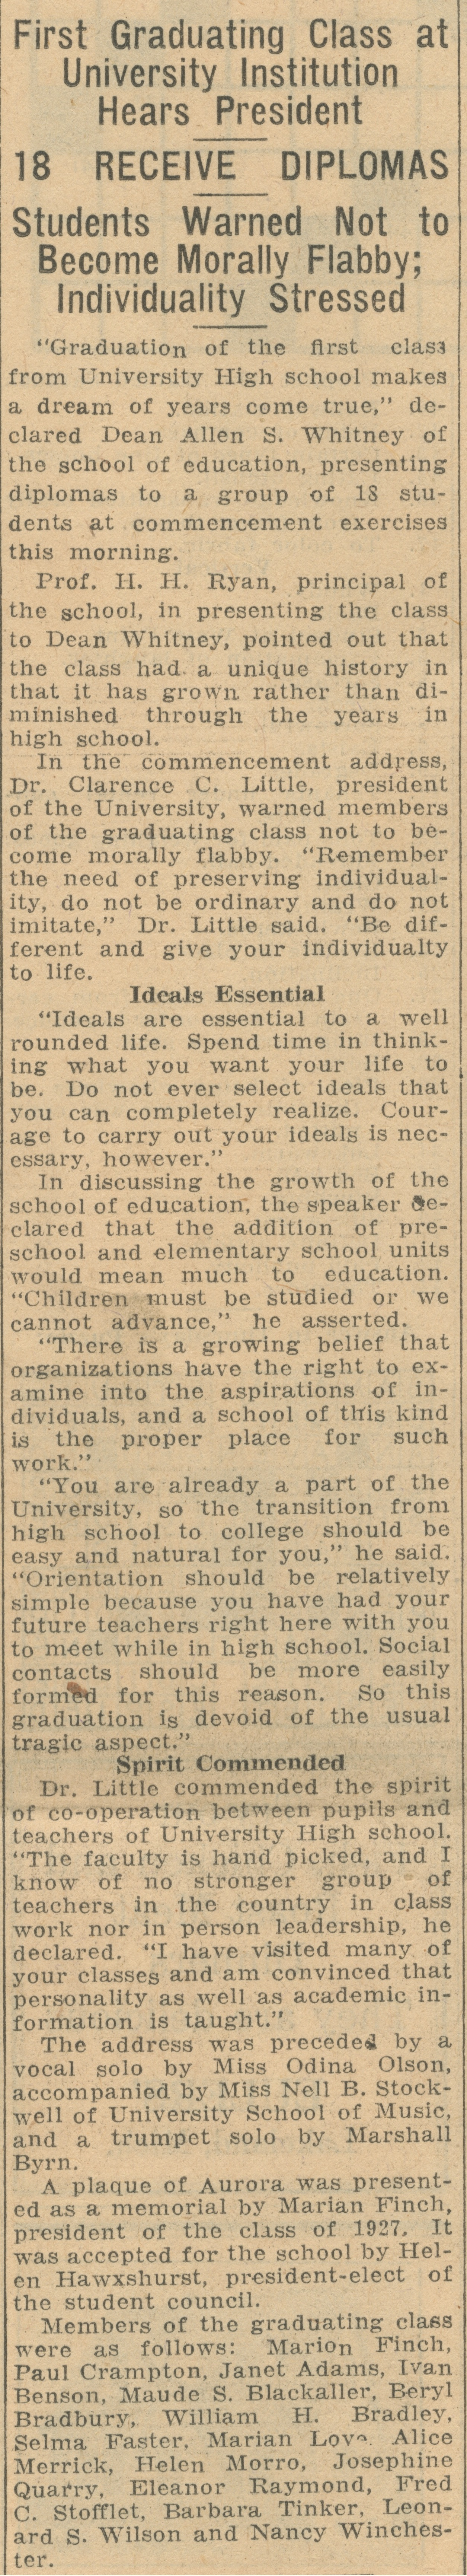 First Graduating Class At University Institution Hears President: 18 Receive Diplomas - Students Warned Not To Become Morally Flabby; Individuality Stressed - June 17, 1927 image